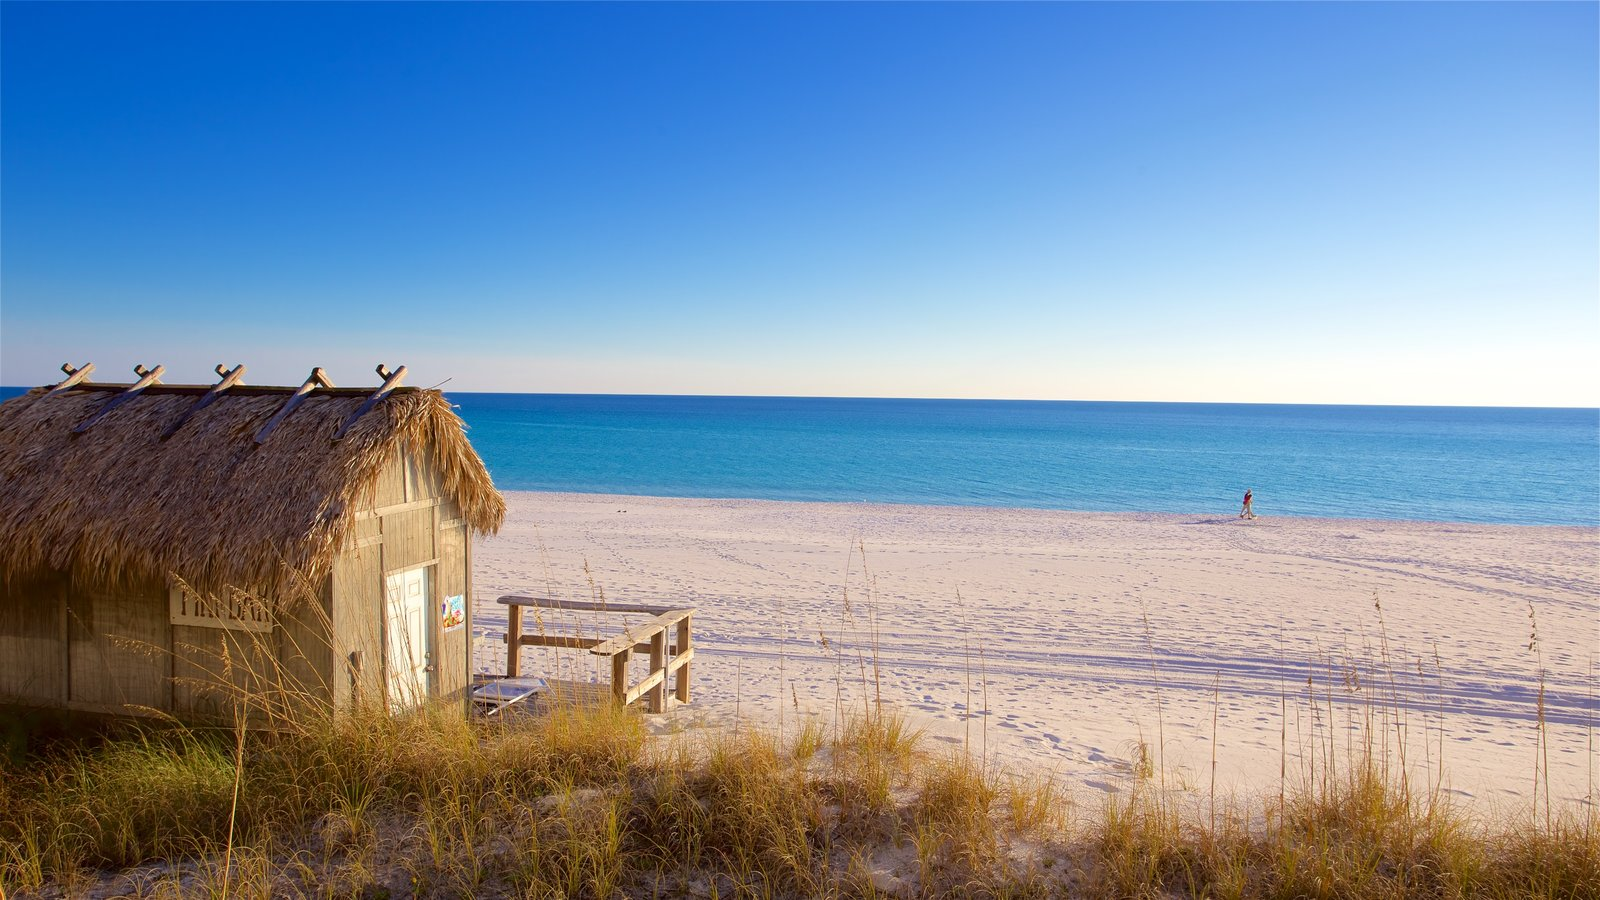 Florida Panhandle which includes a bay or harbor and a sandy beach